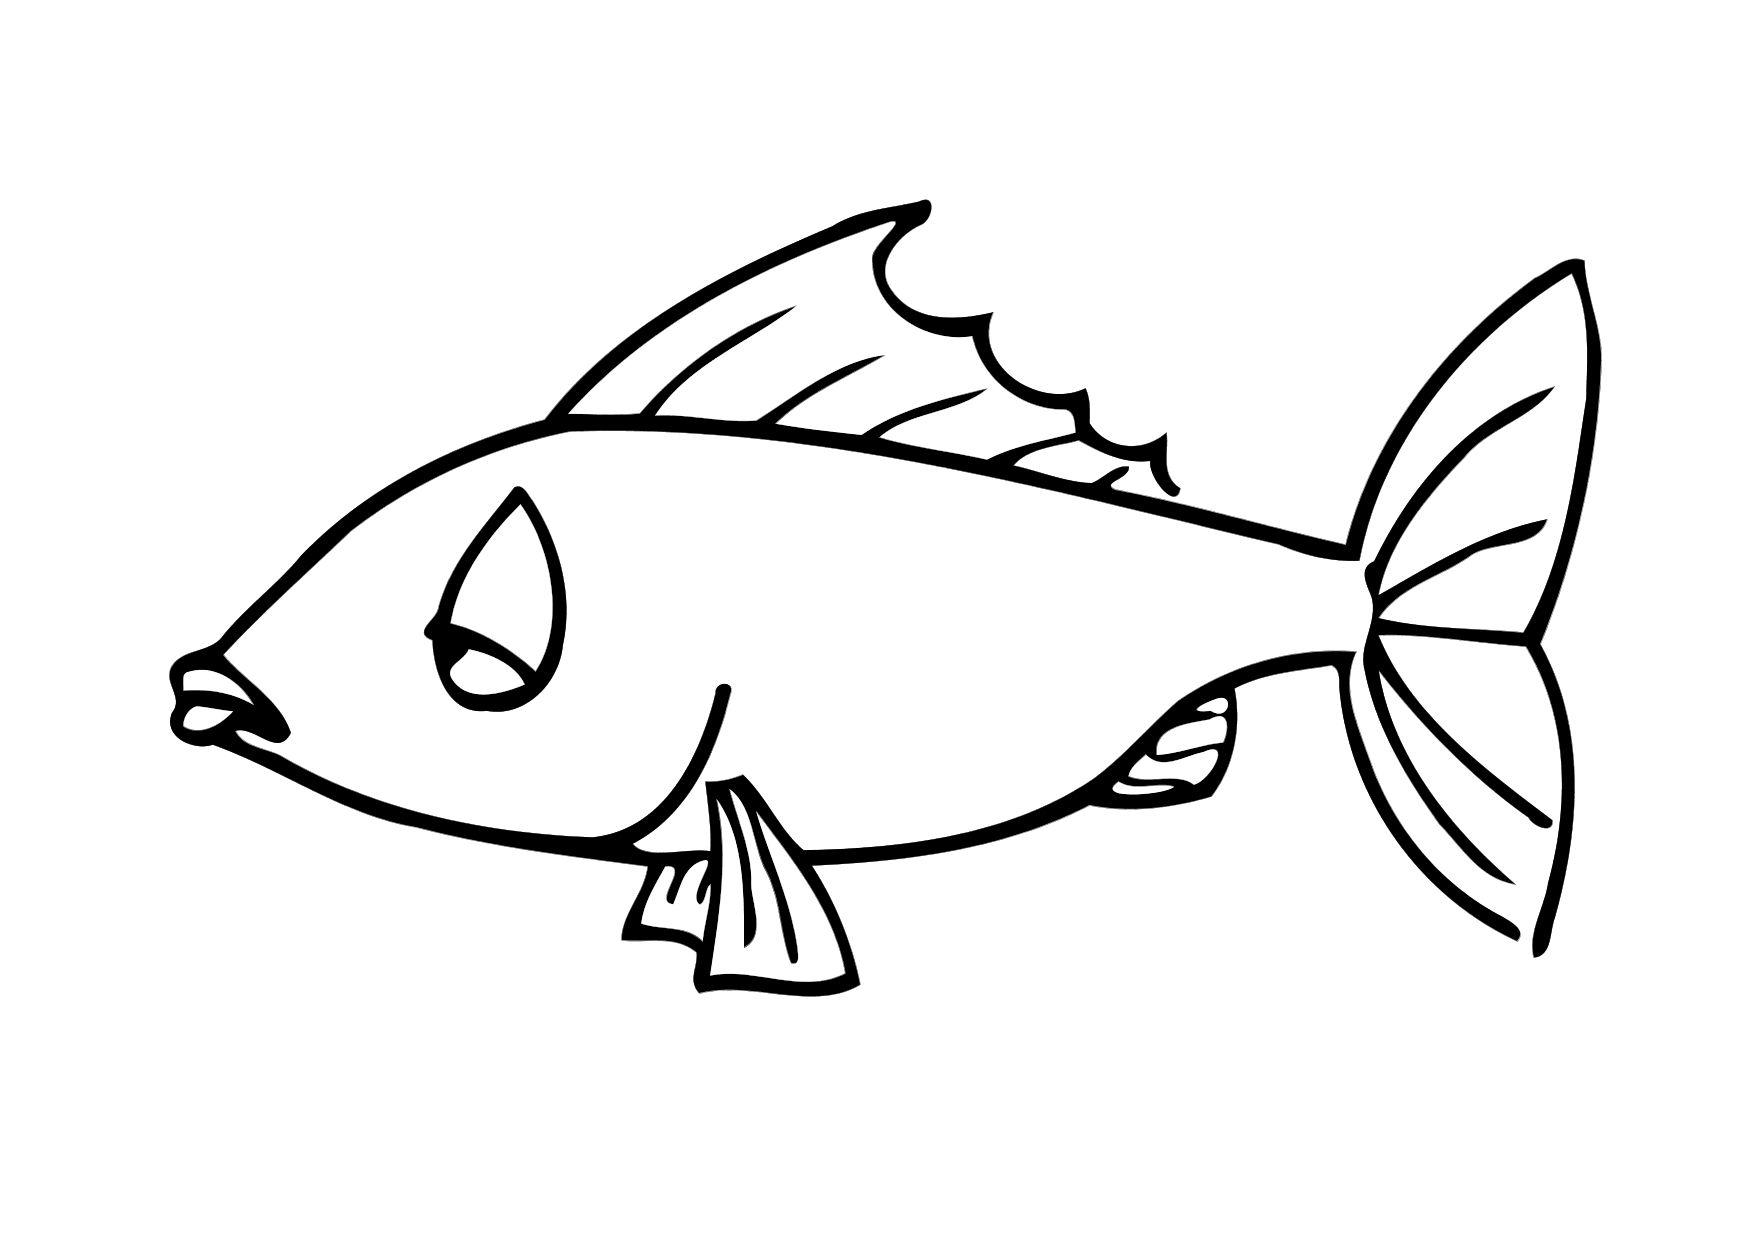 Fish Coloring Pages Online On Download Large Image